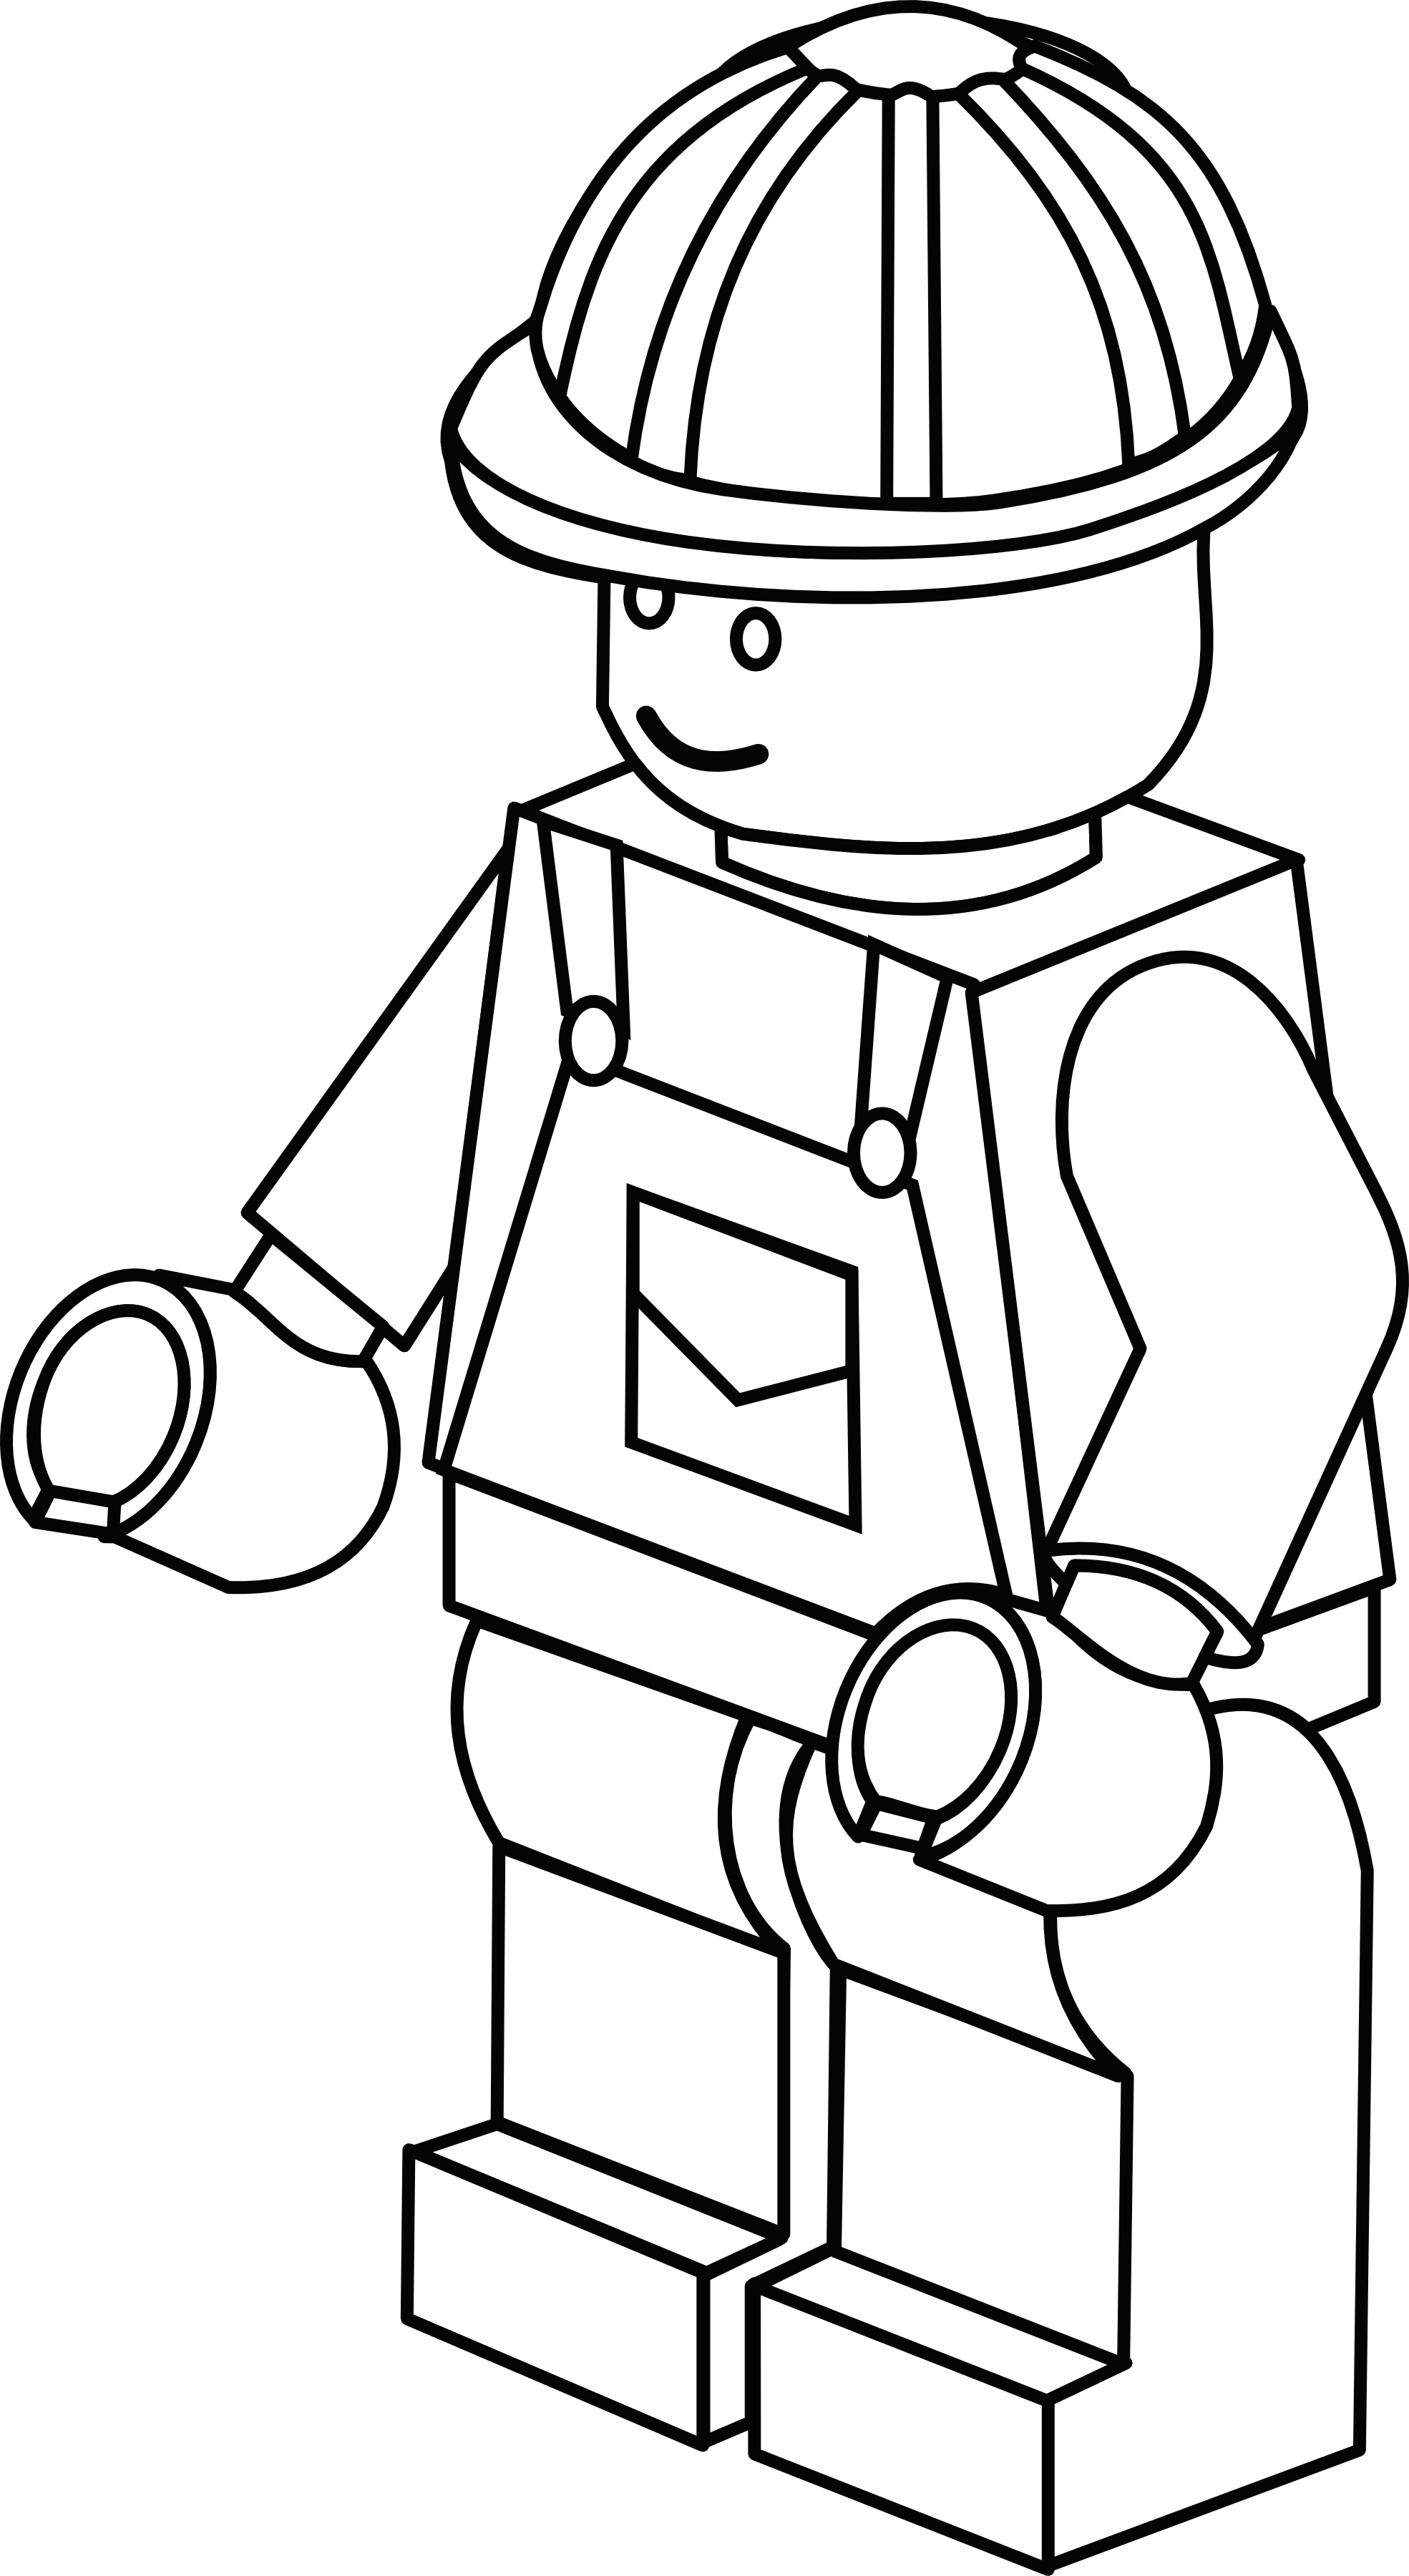 More Complex Lego Figure Colouring Sheet Lego Coloring Pages Lego Coloring Coloring Pages For Kids